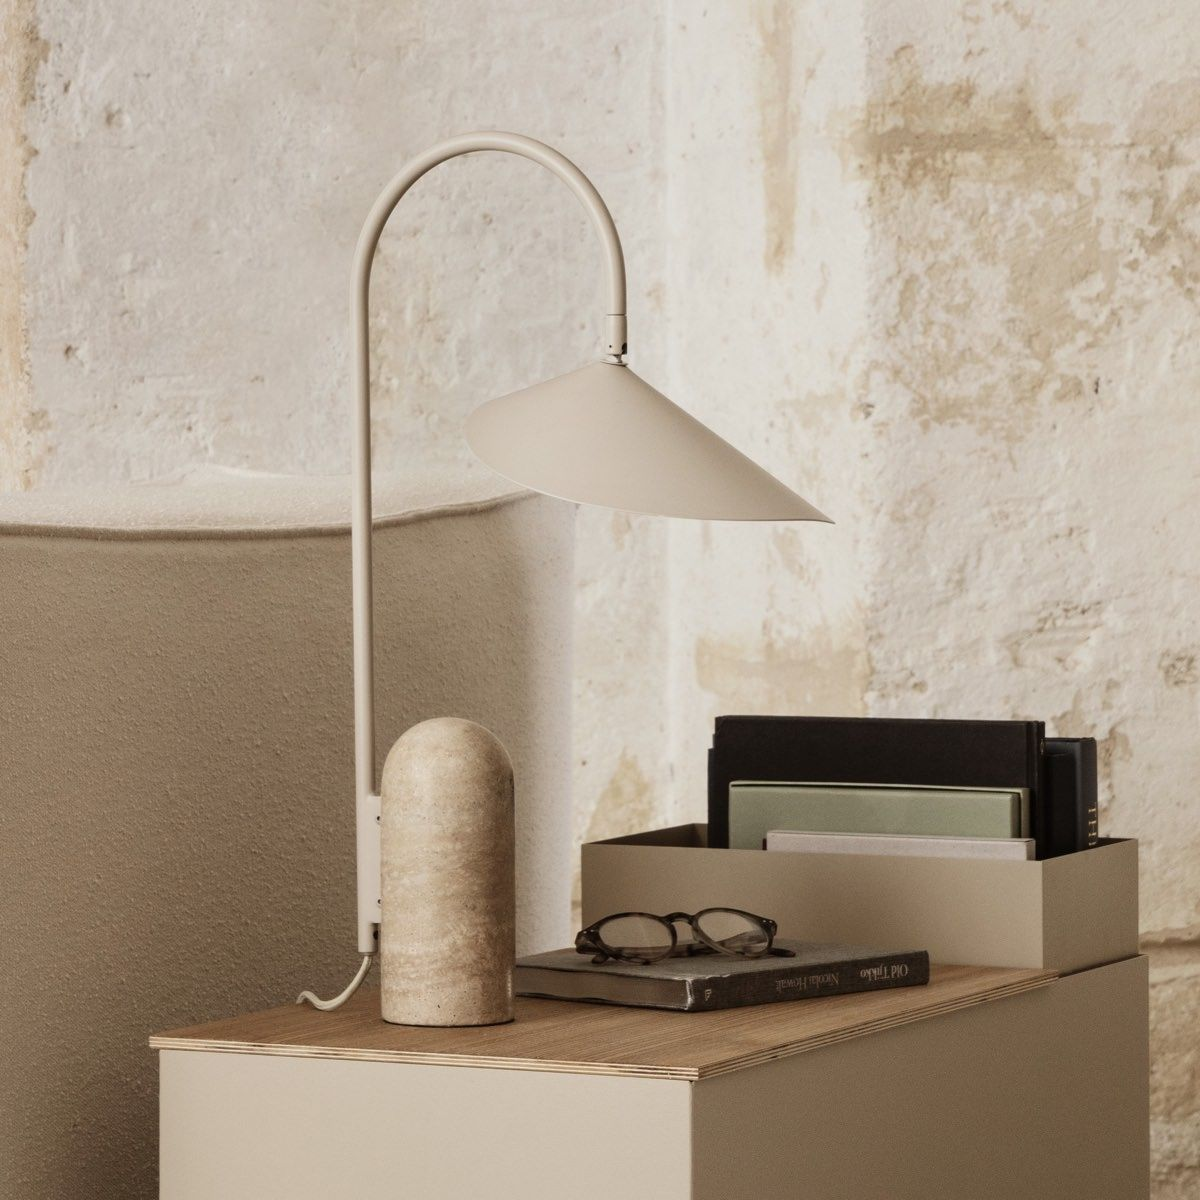 Ferm Living Arum Table Lamp Cashmere on a plant box next to sofa